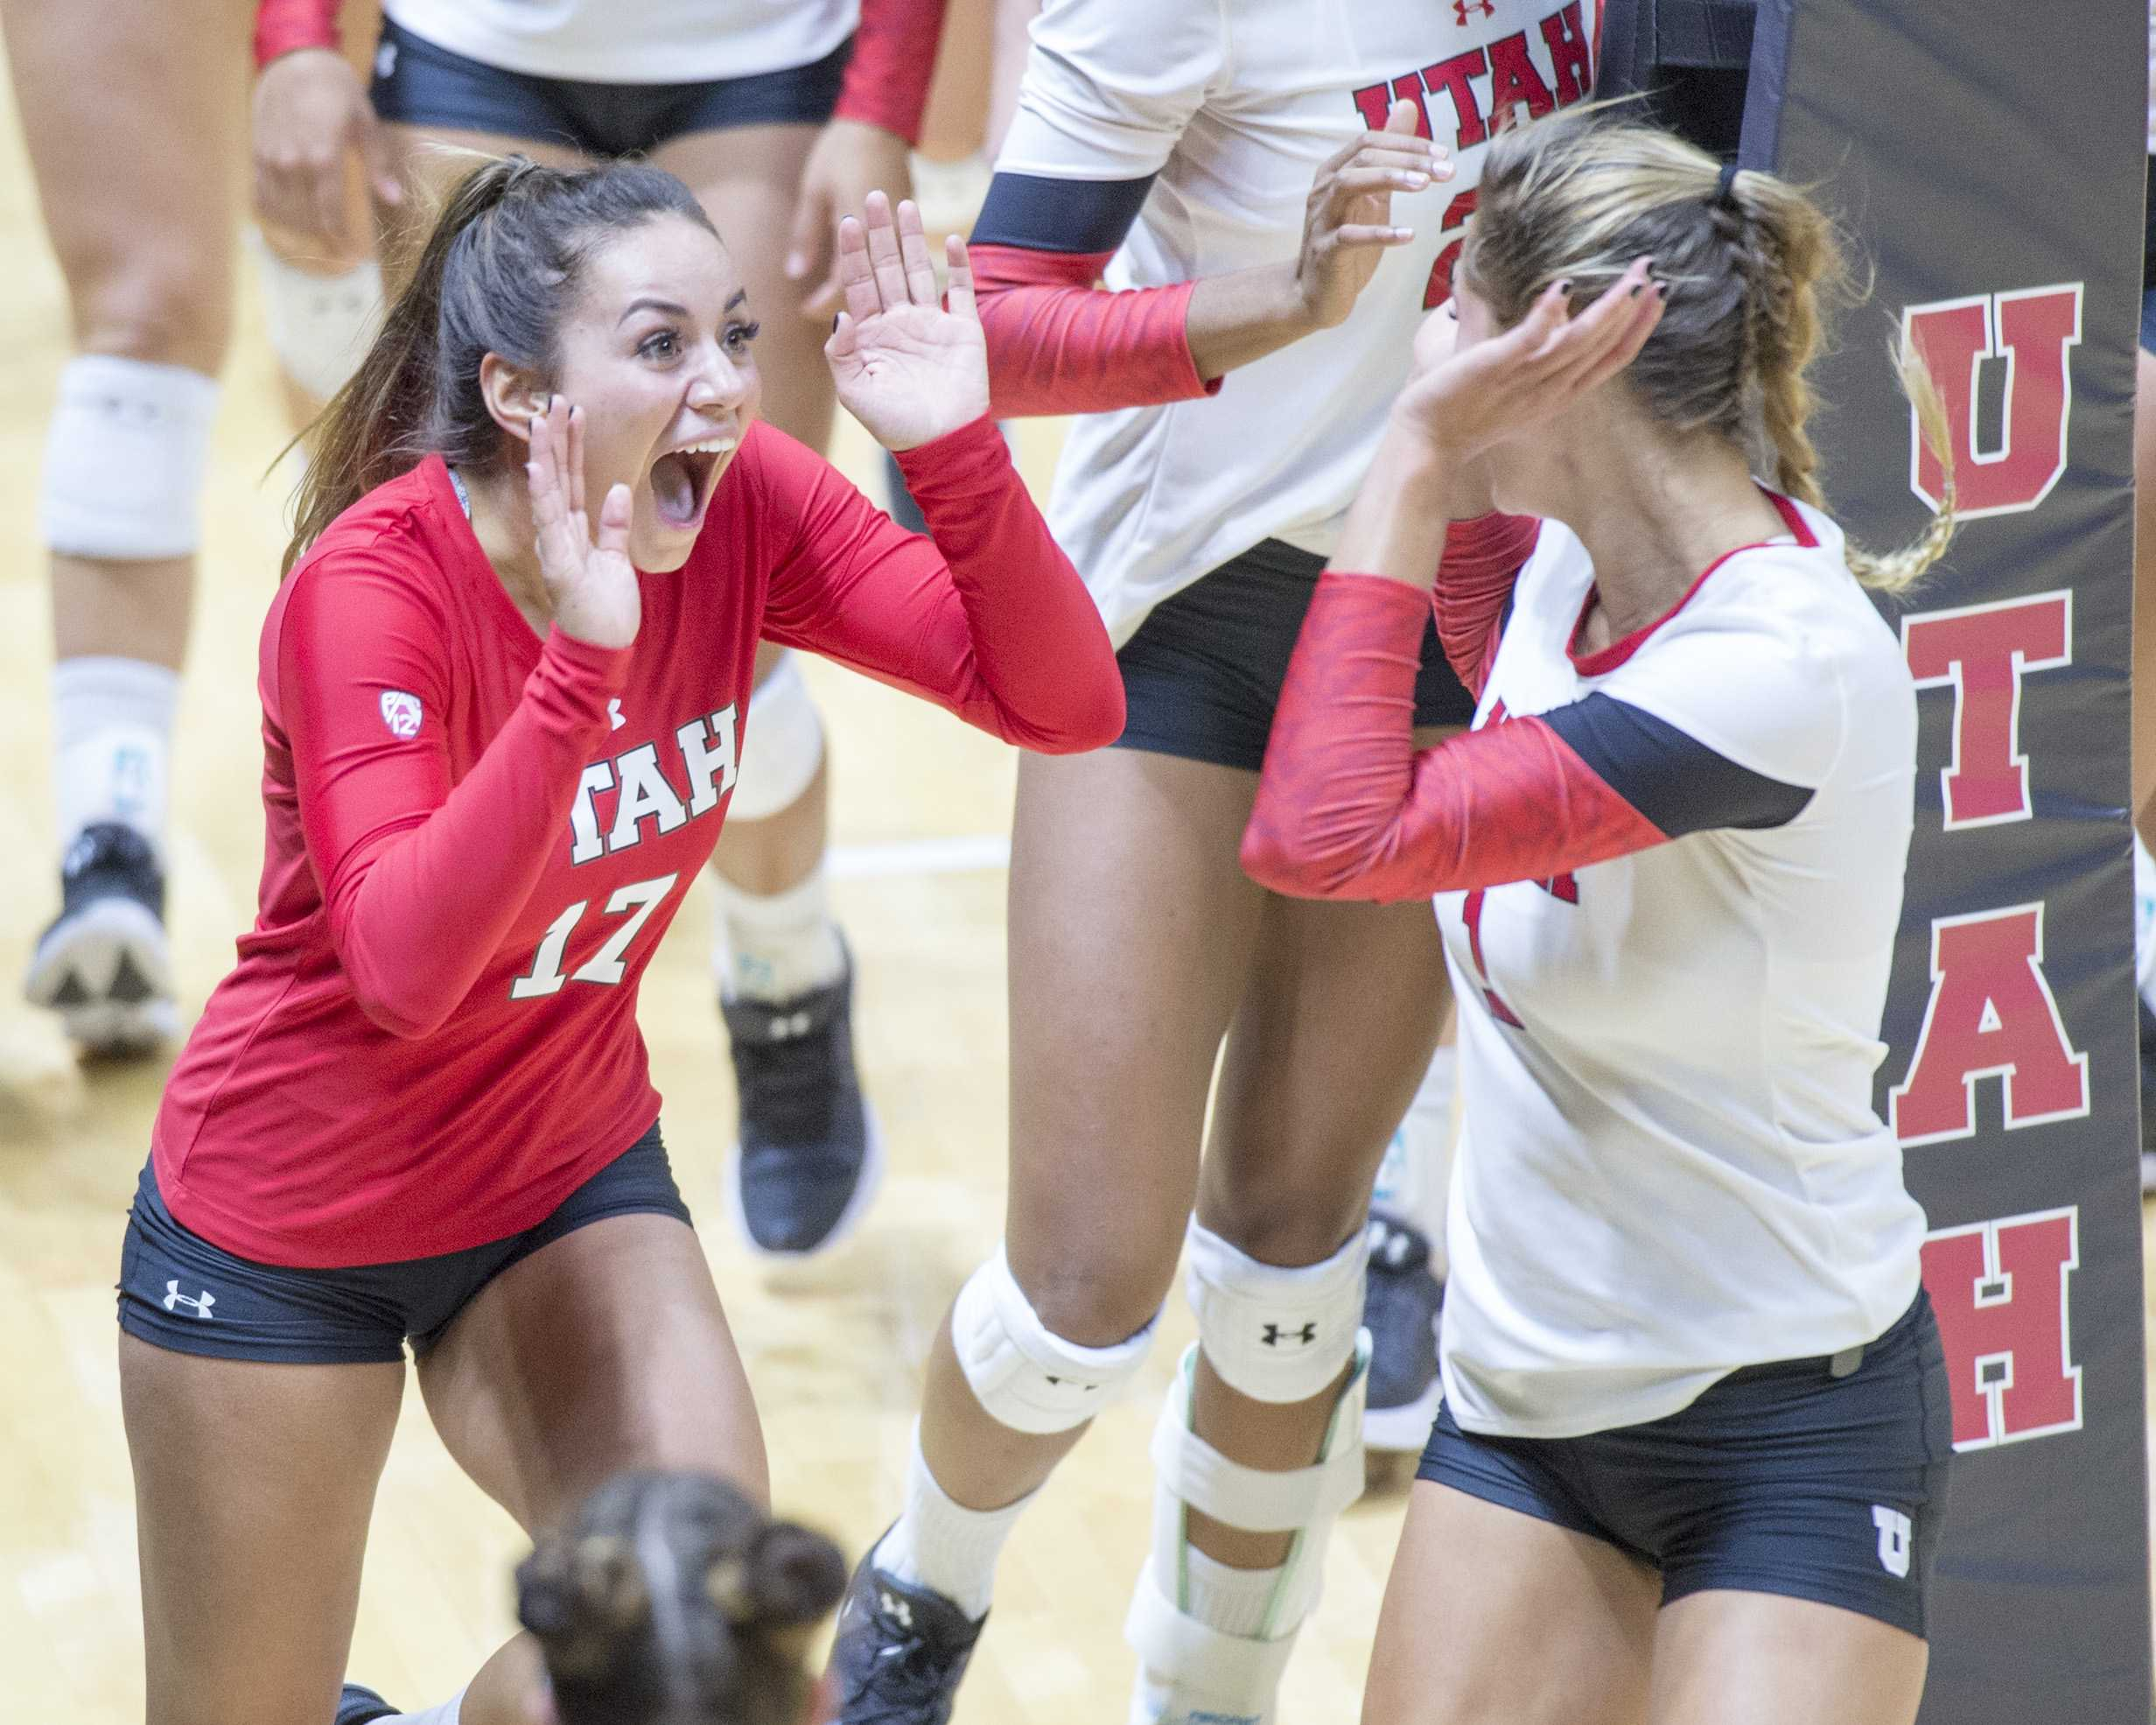 University of Utah Volleyball sophomore libero/defensive specialist Brianna Doehrmann (17) celebrates after winning the third set in a set of matches vs. The Oregon Ducks at the Huntsman Center in Salt Lake City, UT on Friday, Sept. 29, 2017  (Photo by Kiffer Creveling | The Daily Utah Chronicle)